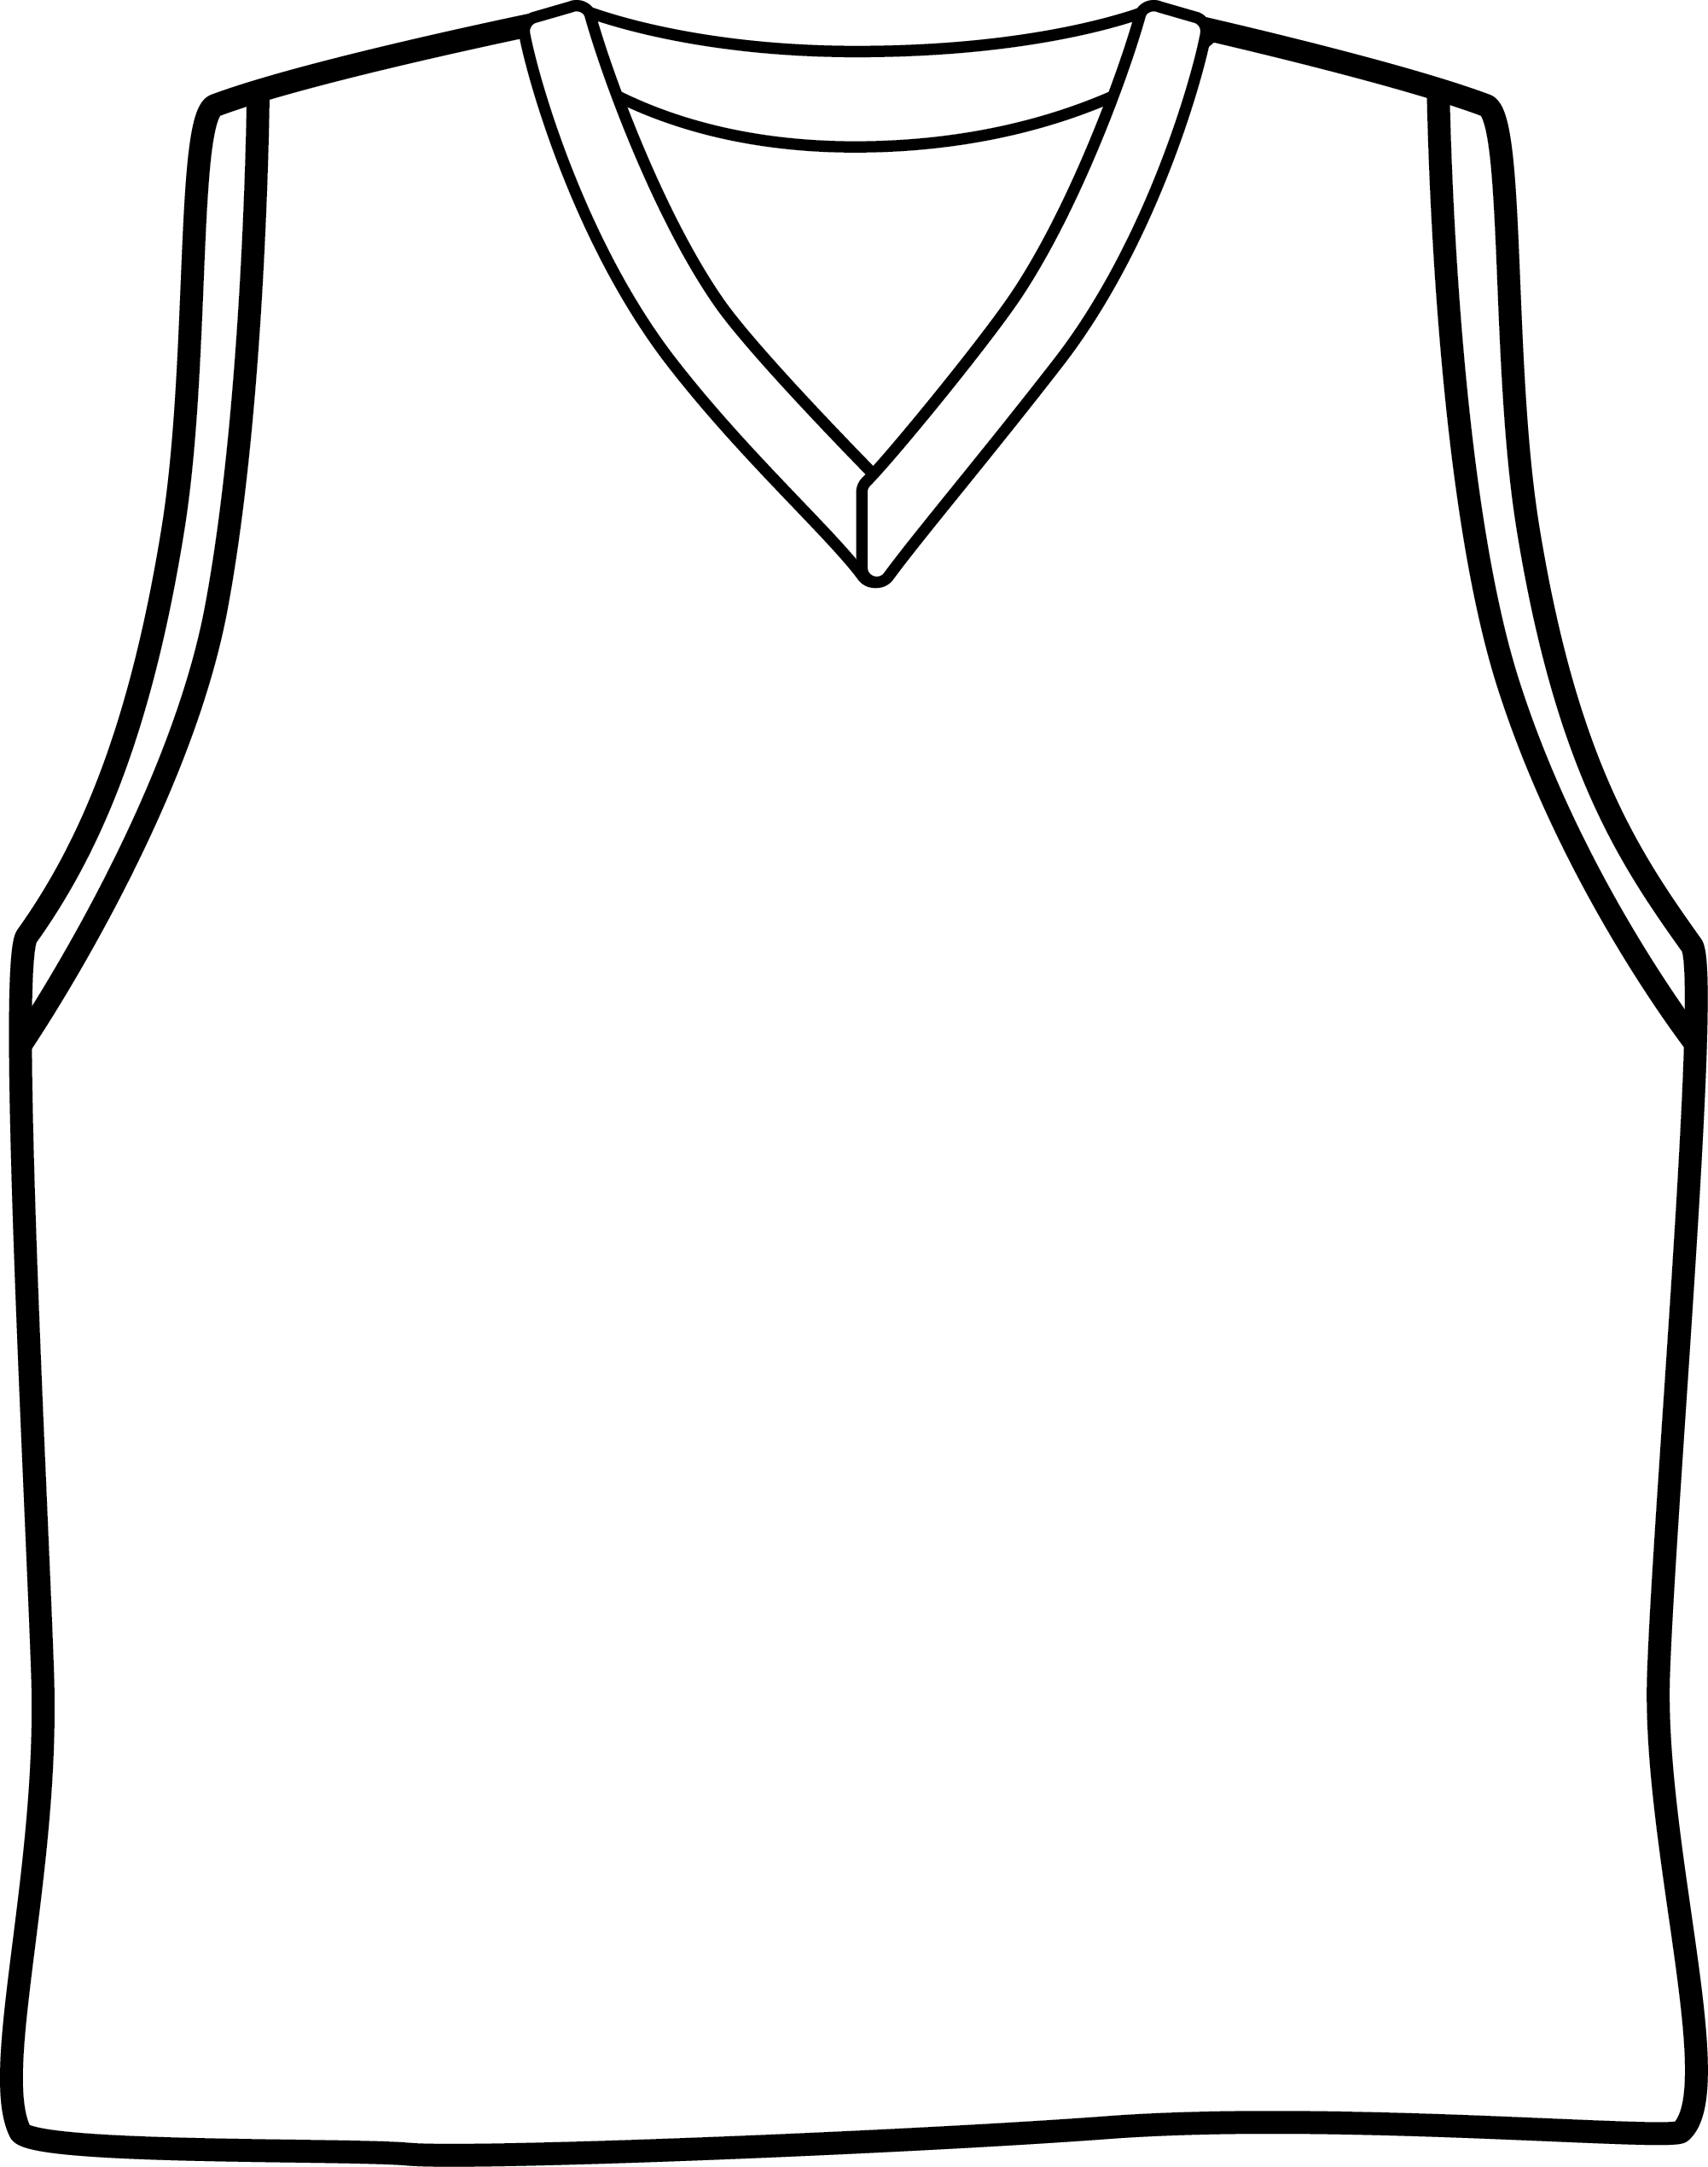 Basketball Jerseys Clipart 20 Free Cliparts